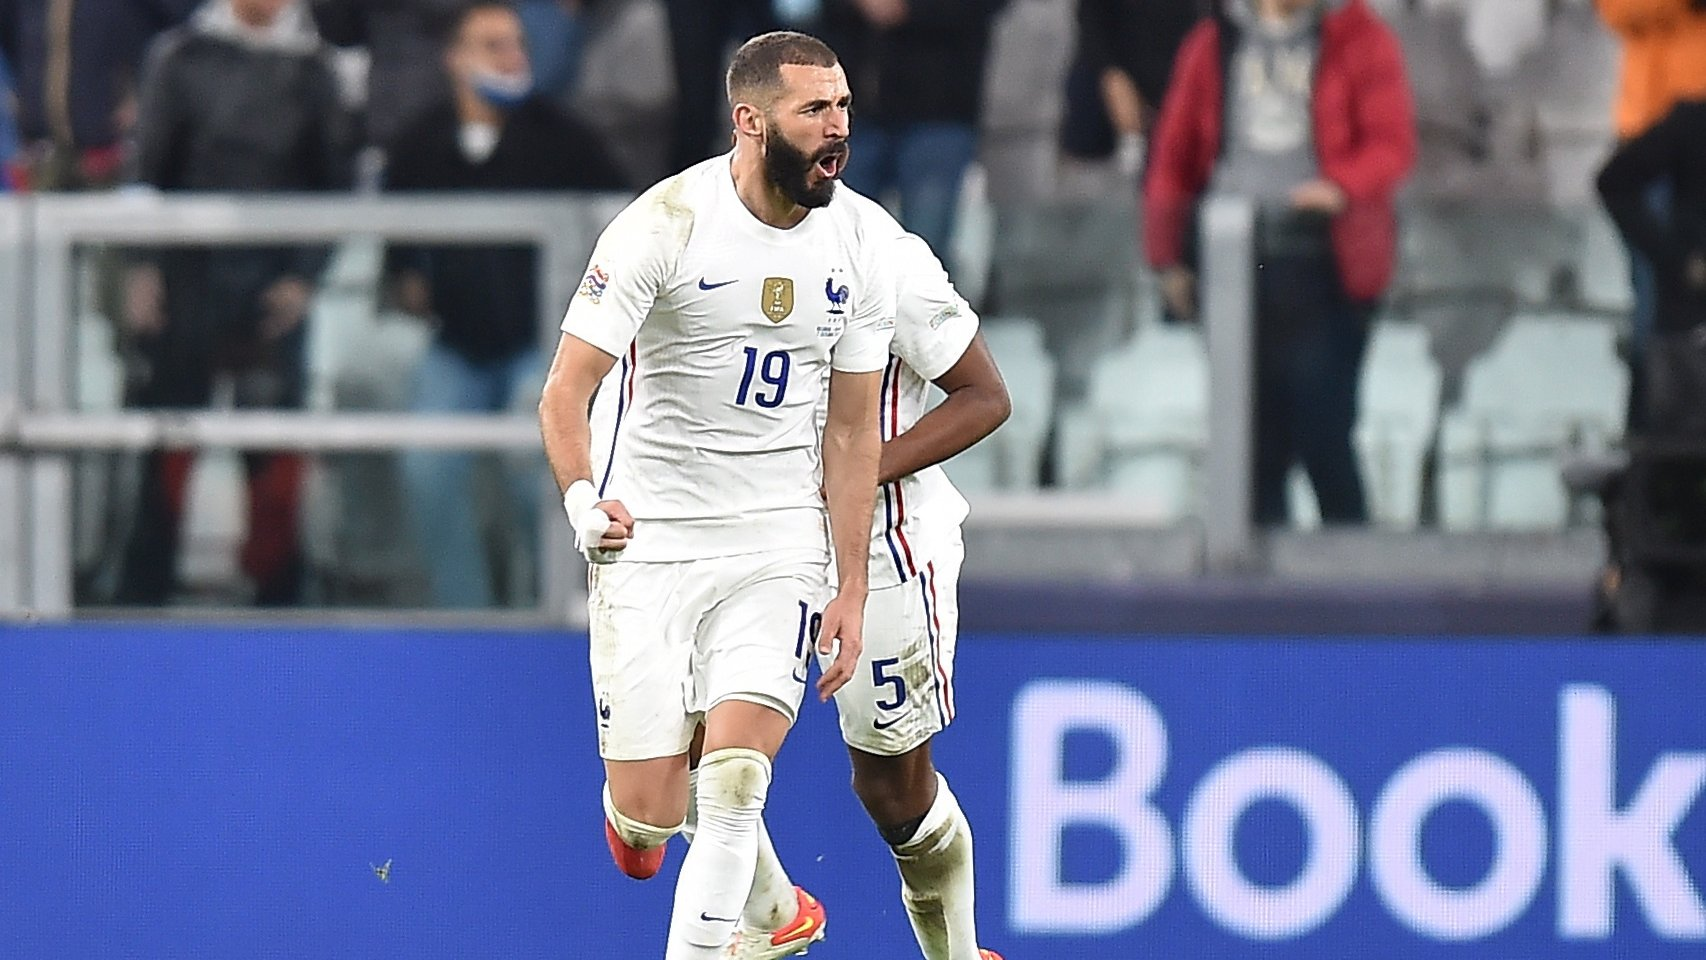 epa09512058 Karim Benzema of France celebrates after scoring during the UEFA Nations League semi final soccer match between Belgium and France in Turin, Italy, 07 October 2021.  EPA/Alessandro di Marco